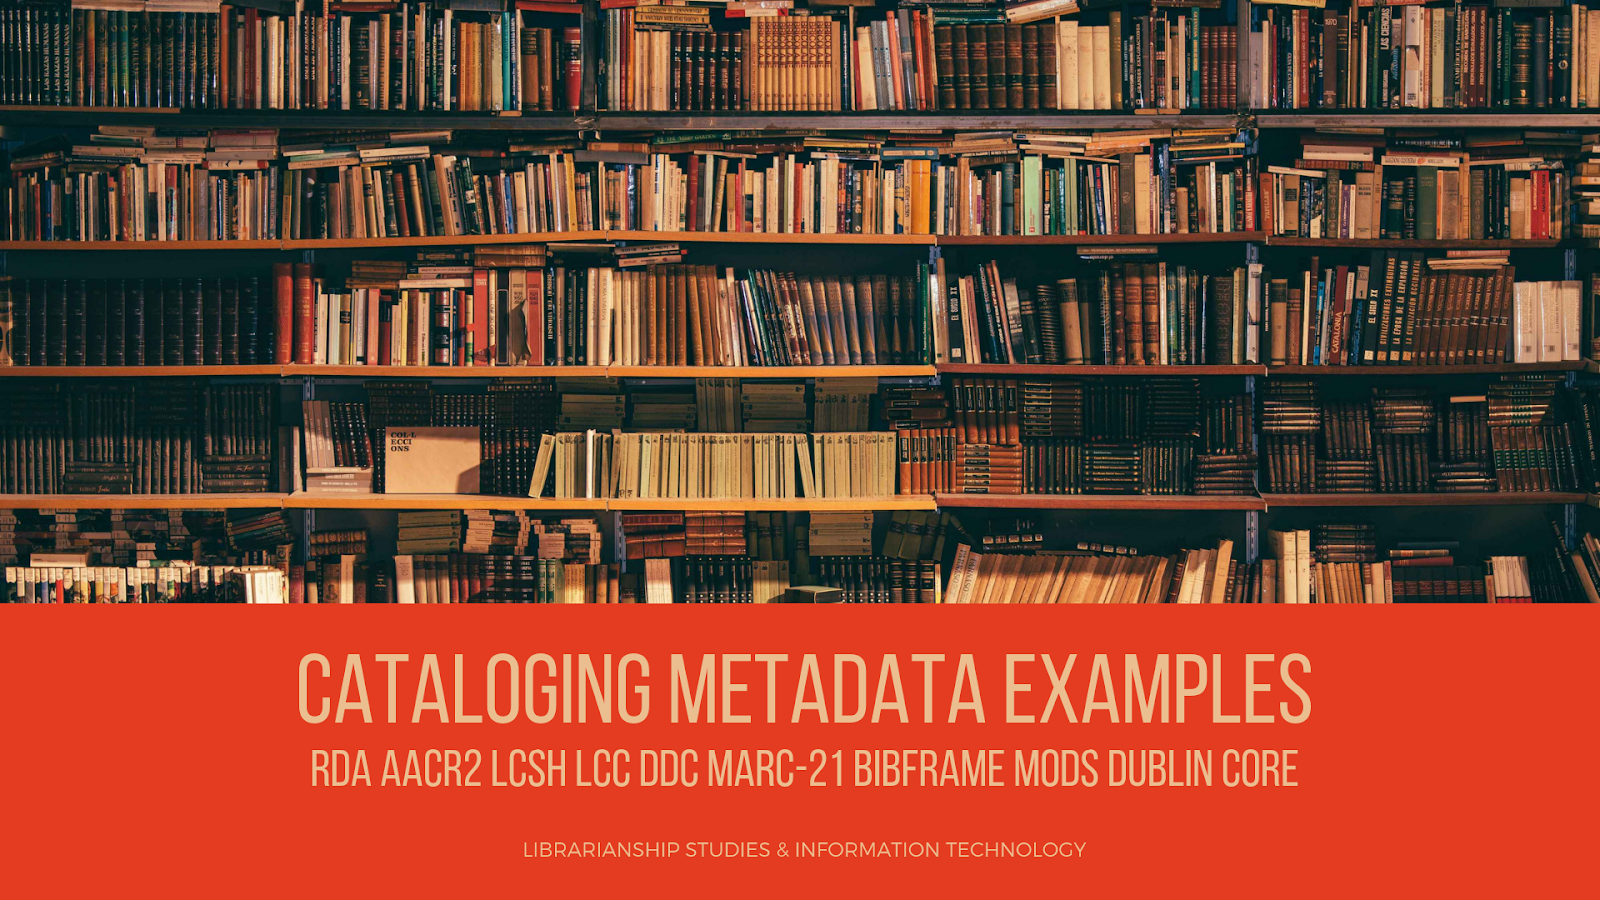 CATALOGING METADATA EXAMPLES RDA AACR2 LCSH LCC DDC MARC-21 BIBFRAME MODS DUBLIN CORE